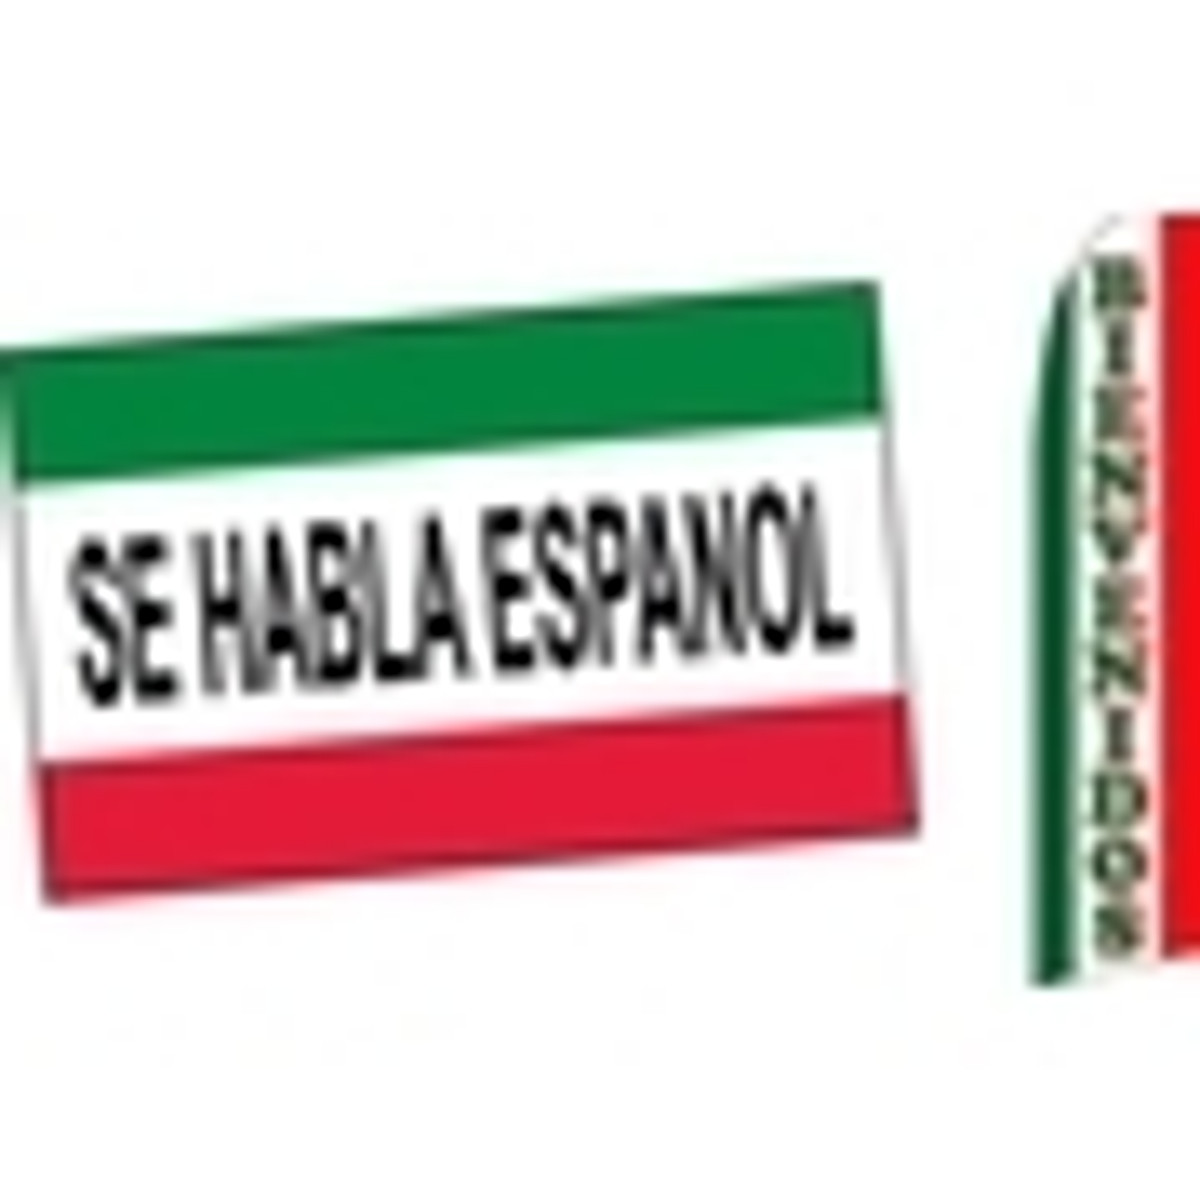 Spanish Message Flags